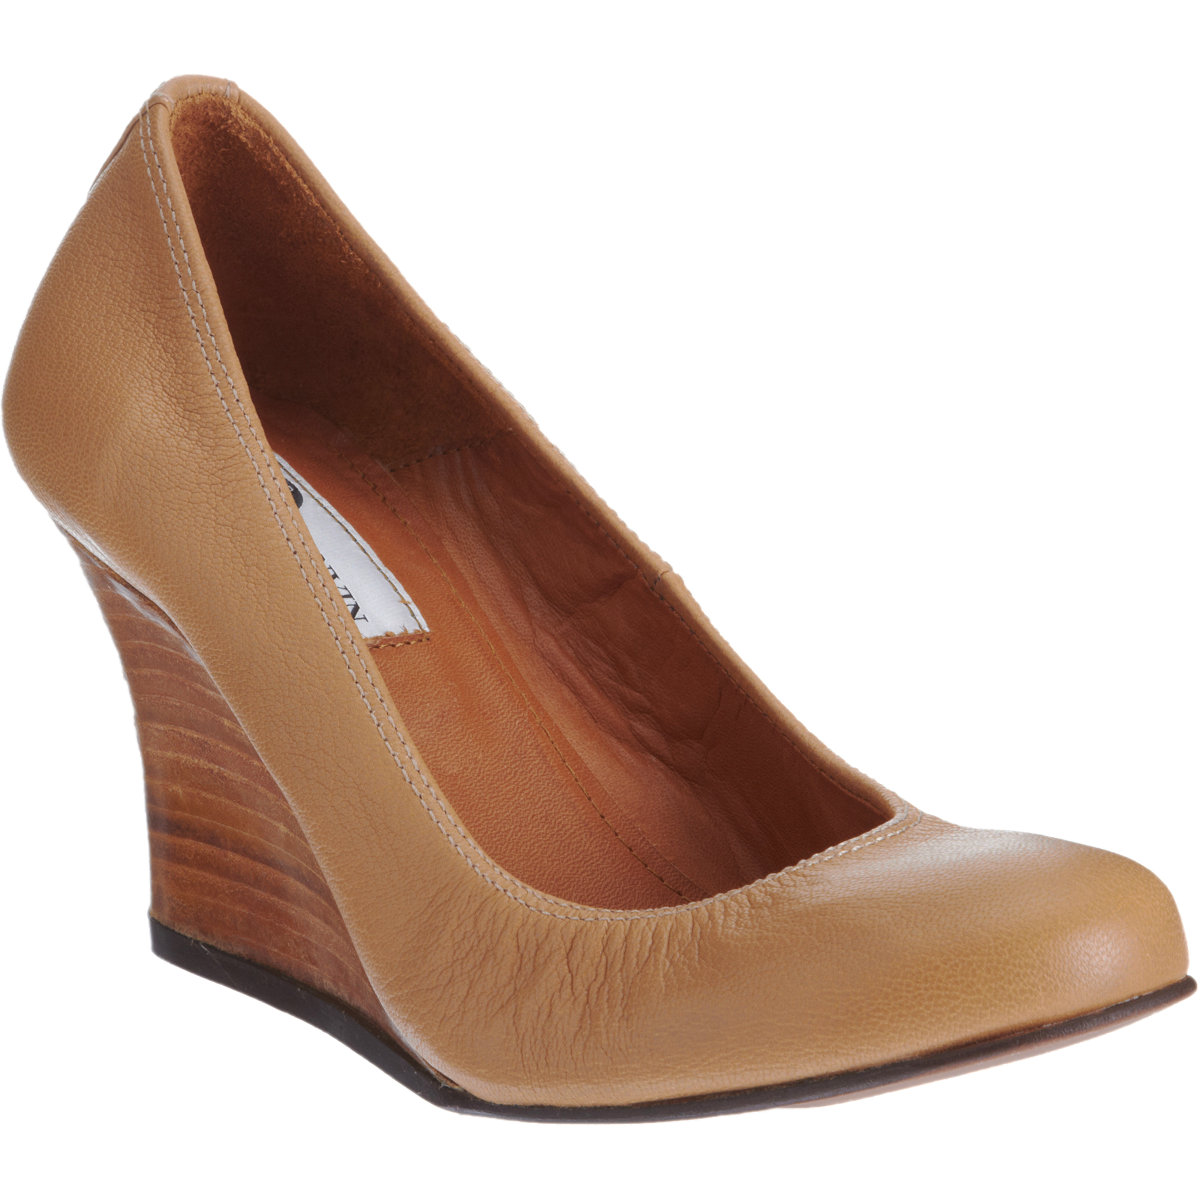 Brown Womens Wedge Shoes